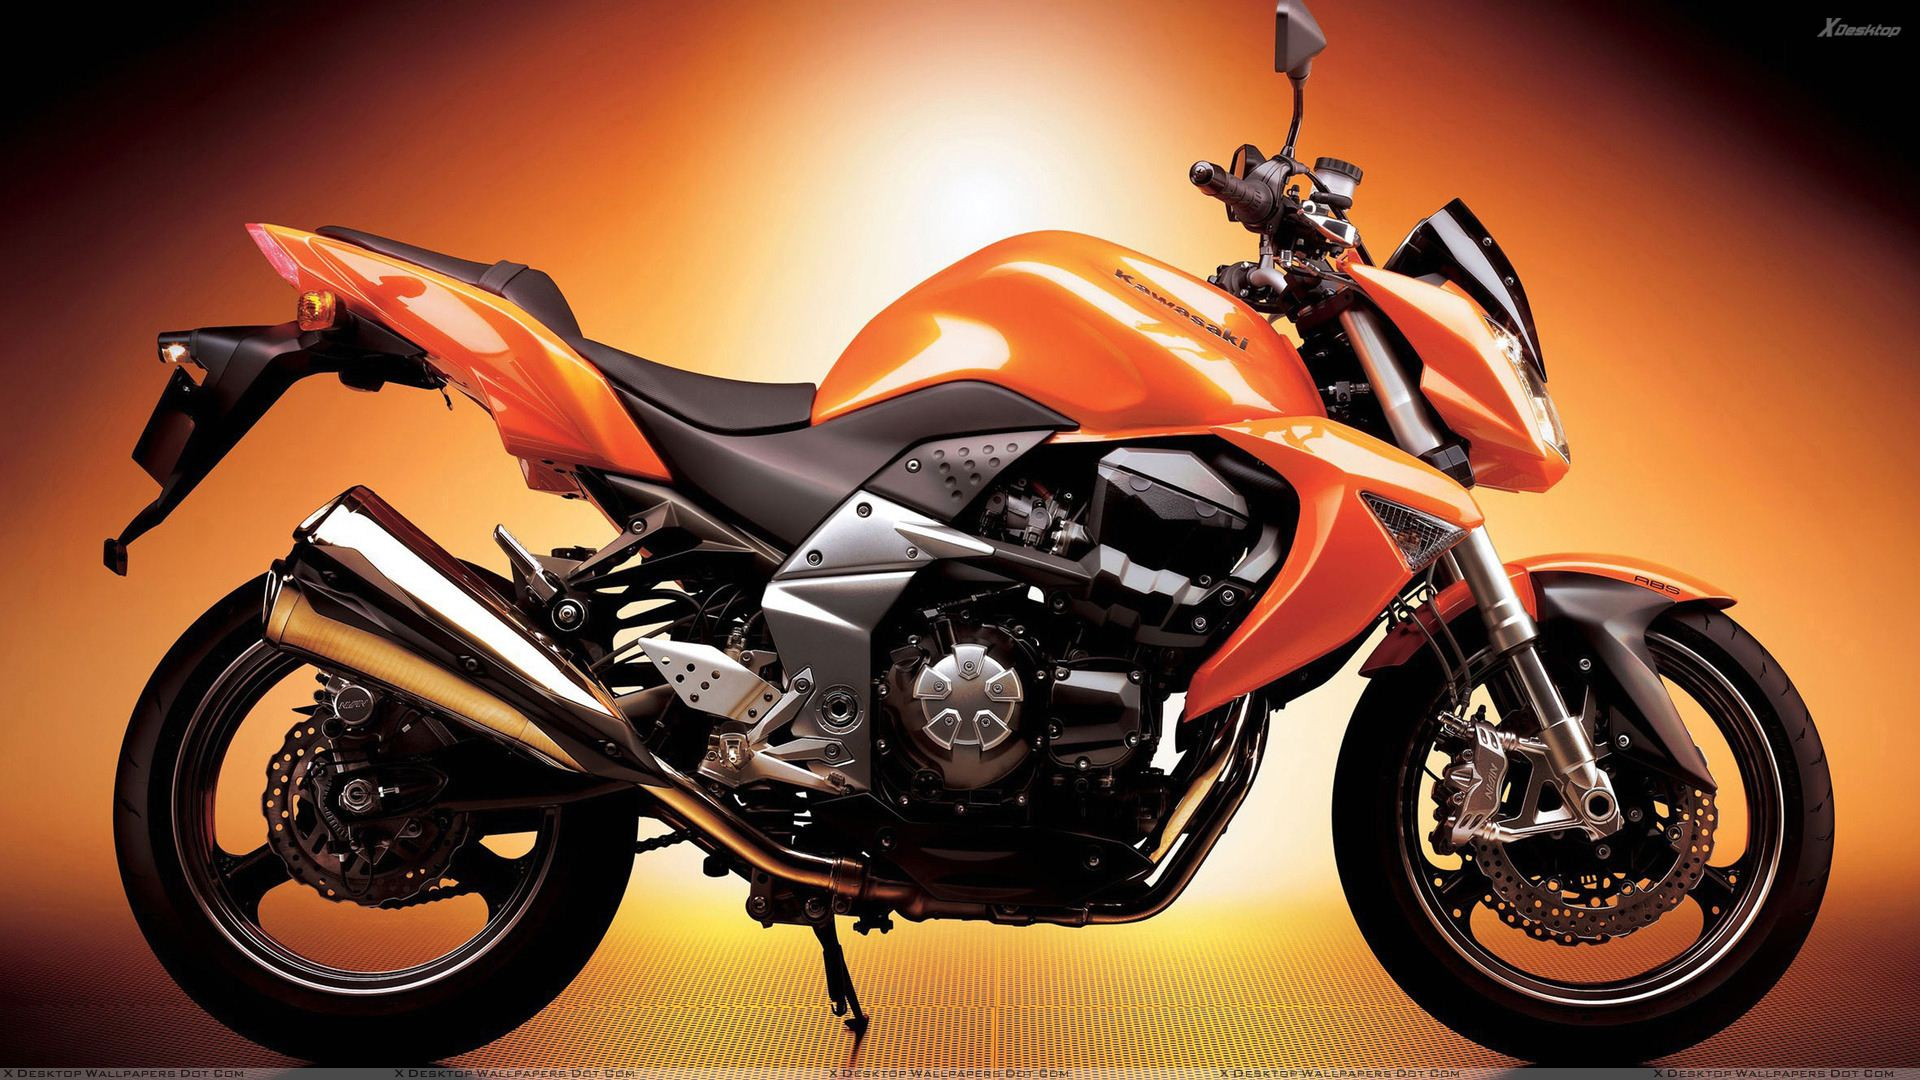 You Are Viewing Wallpaper Titled Kawasaki Z1000 In Orange